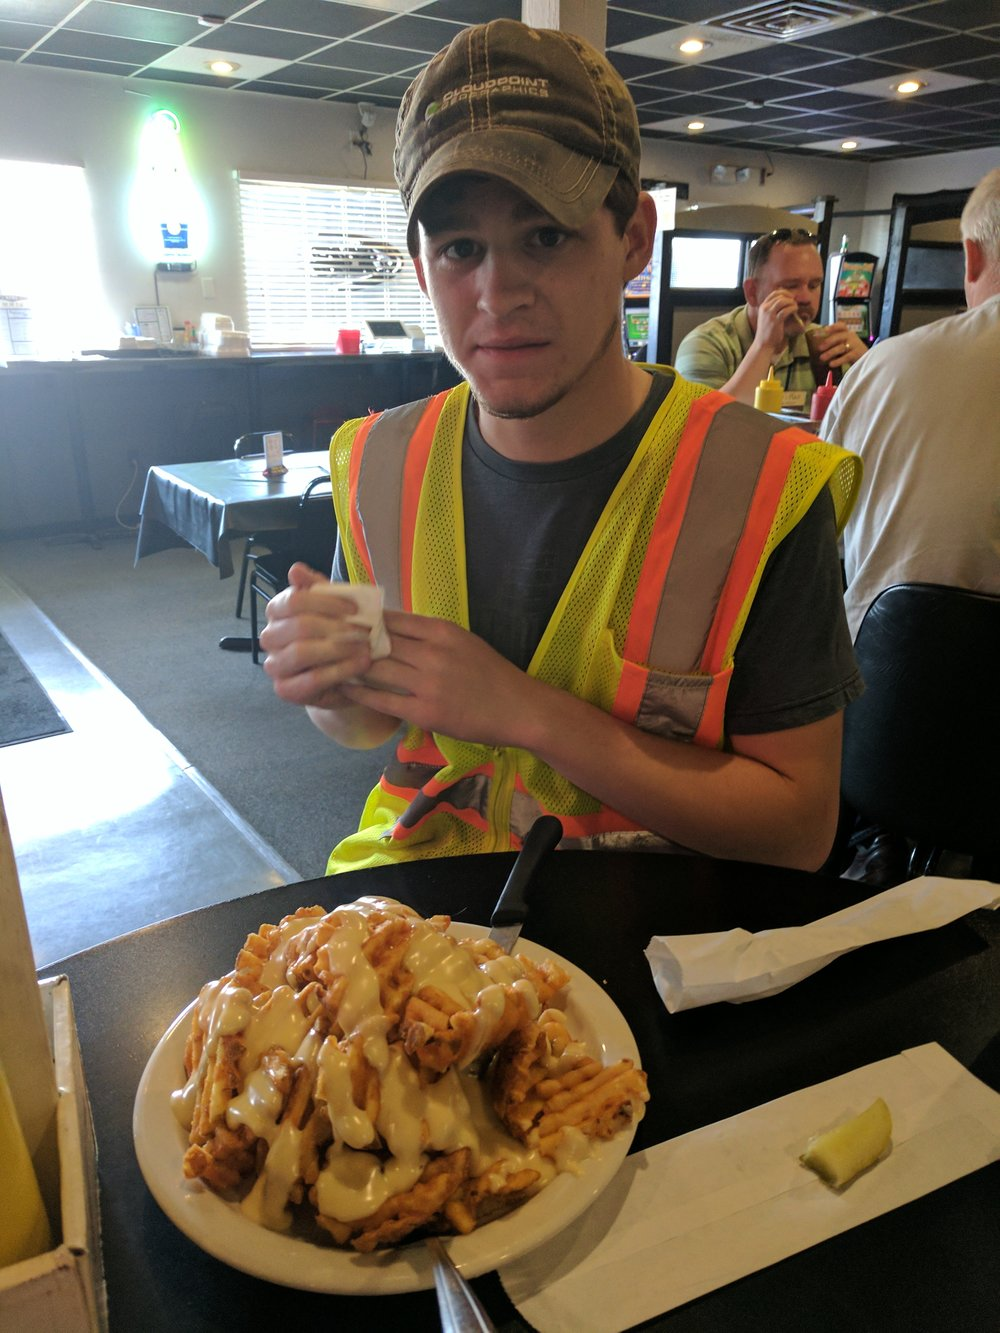 While at Macon County we frequented several local eateries for lunch. One of our absolute favorites was Pop's Place. Tyler is seen here with his favorite order; the hosreshoe with white cheese sauce.